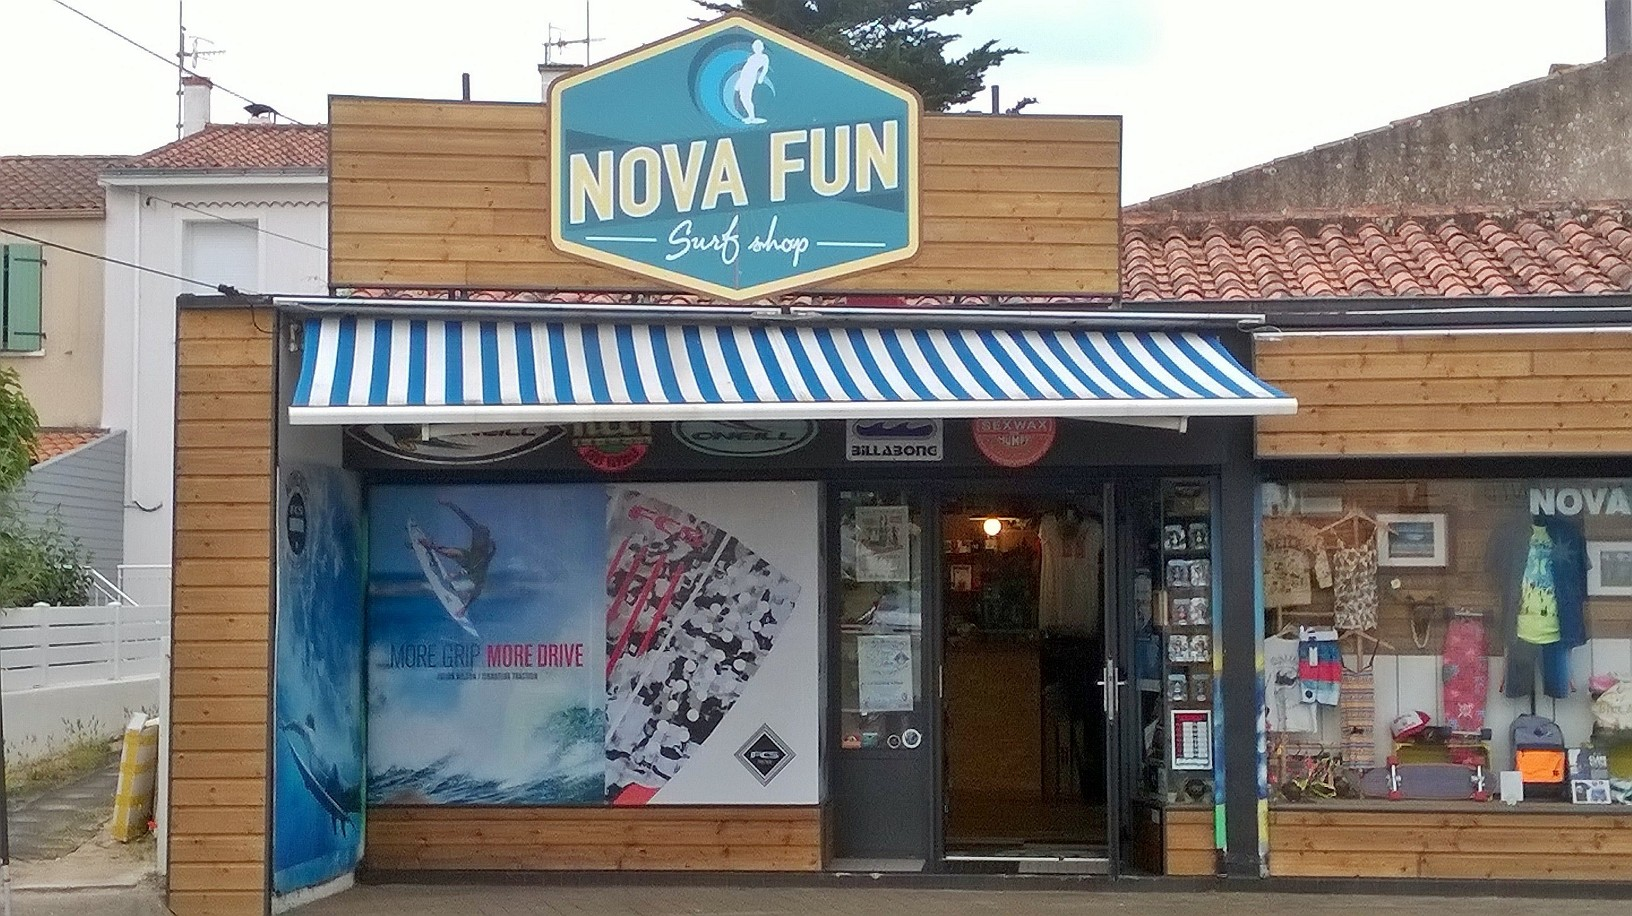 vitrine nova fun surfshop